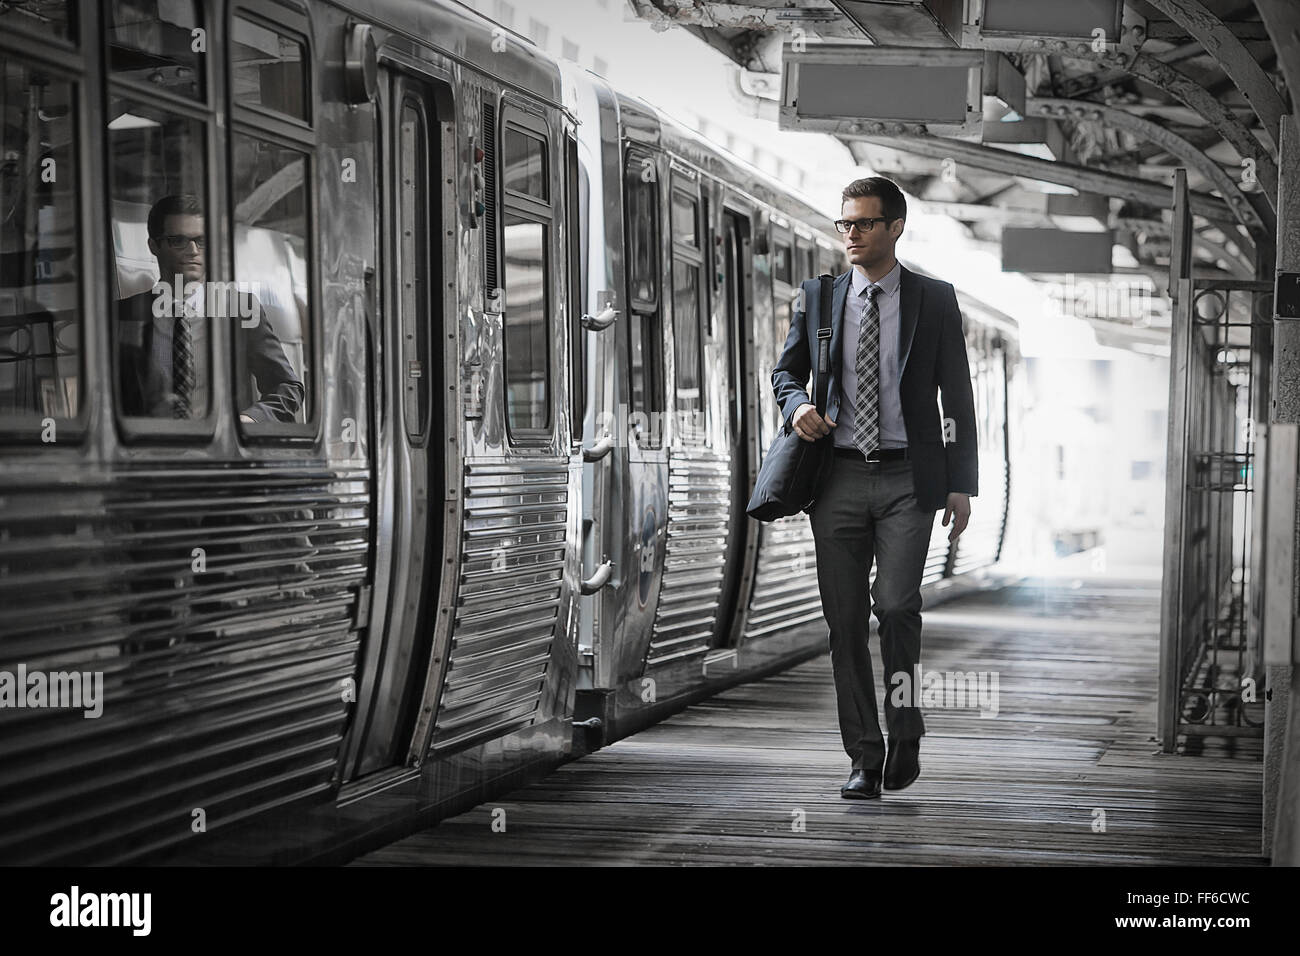 A working day. Businessman in a work suit and tie walking on the platform by a train carriage. - Stock Image